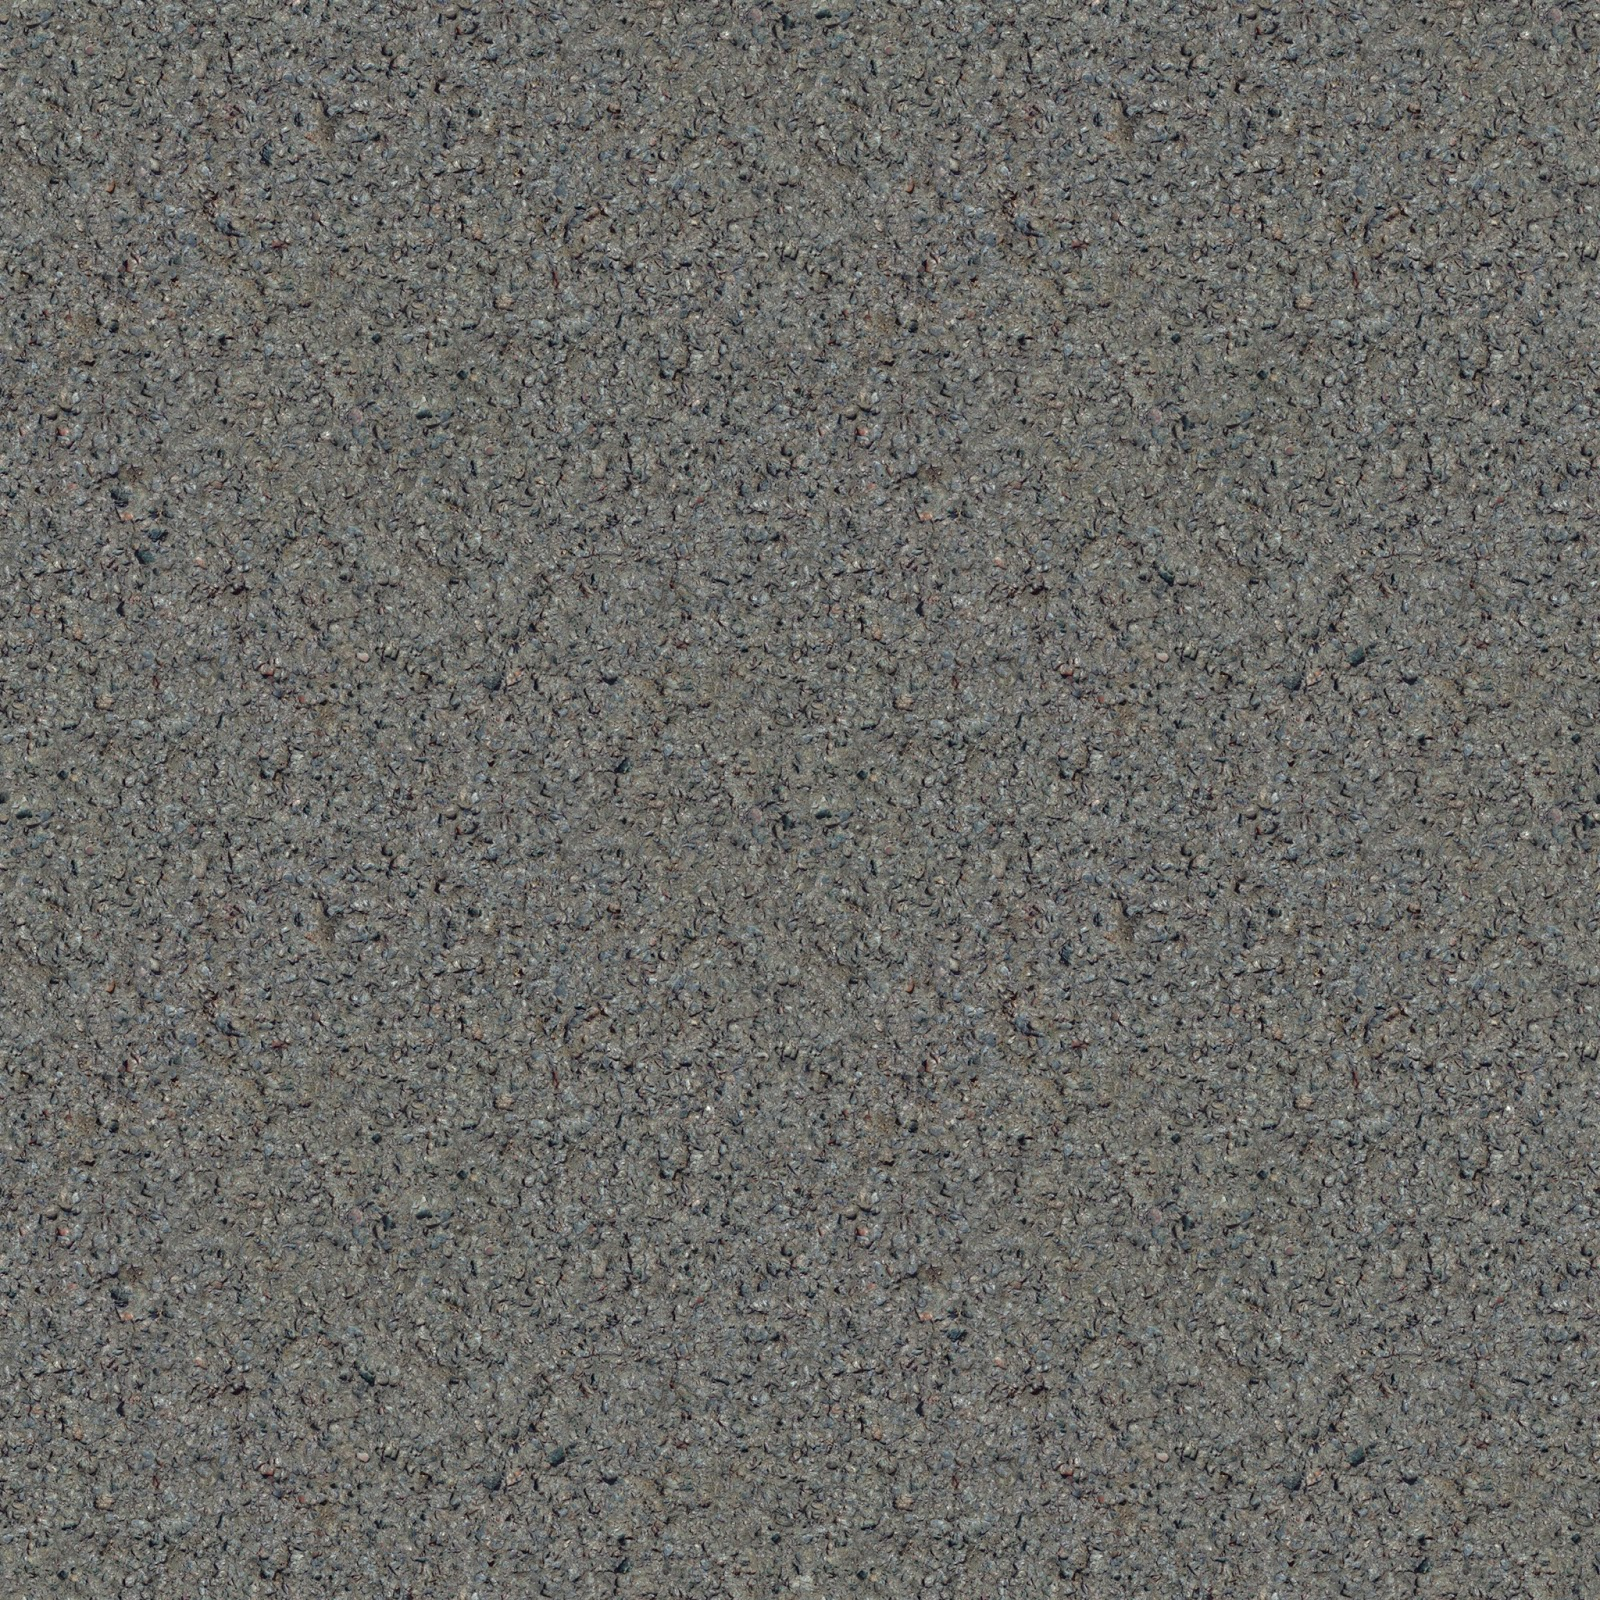 Download Games Design My Home High Resolution Seamless Textures Road Grey Seamless Texture